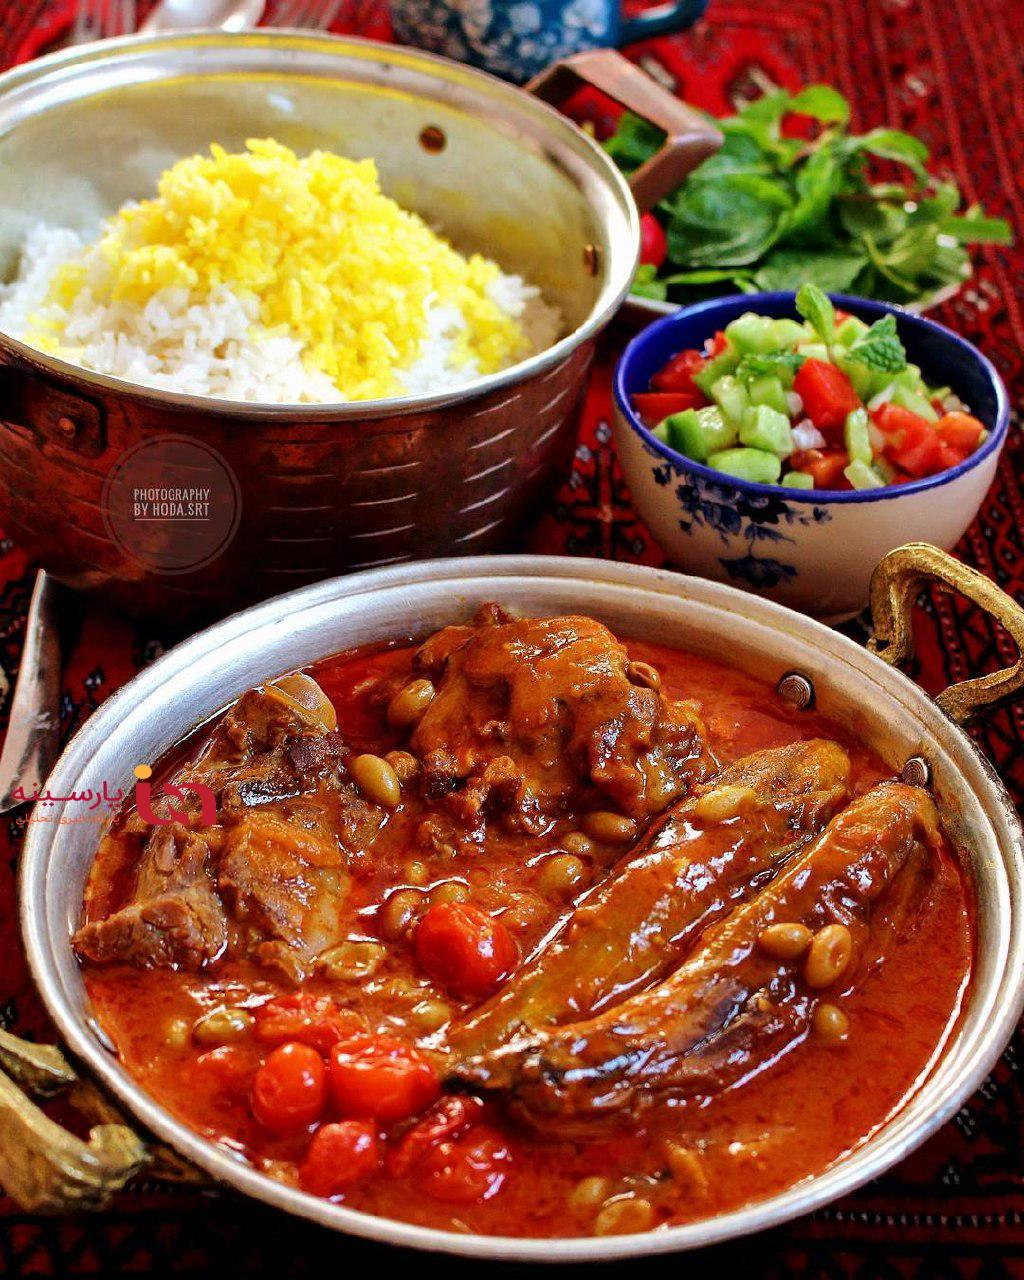 Khoresht Bademjoumn eggplant stew with shirazi salad and vegetables